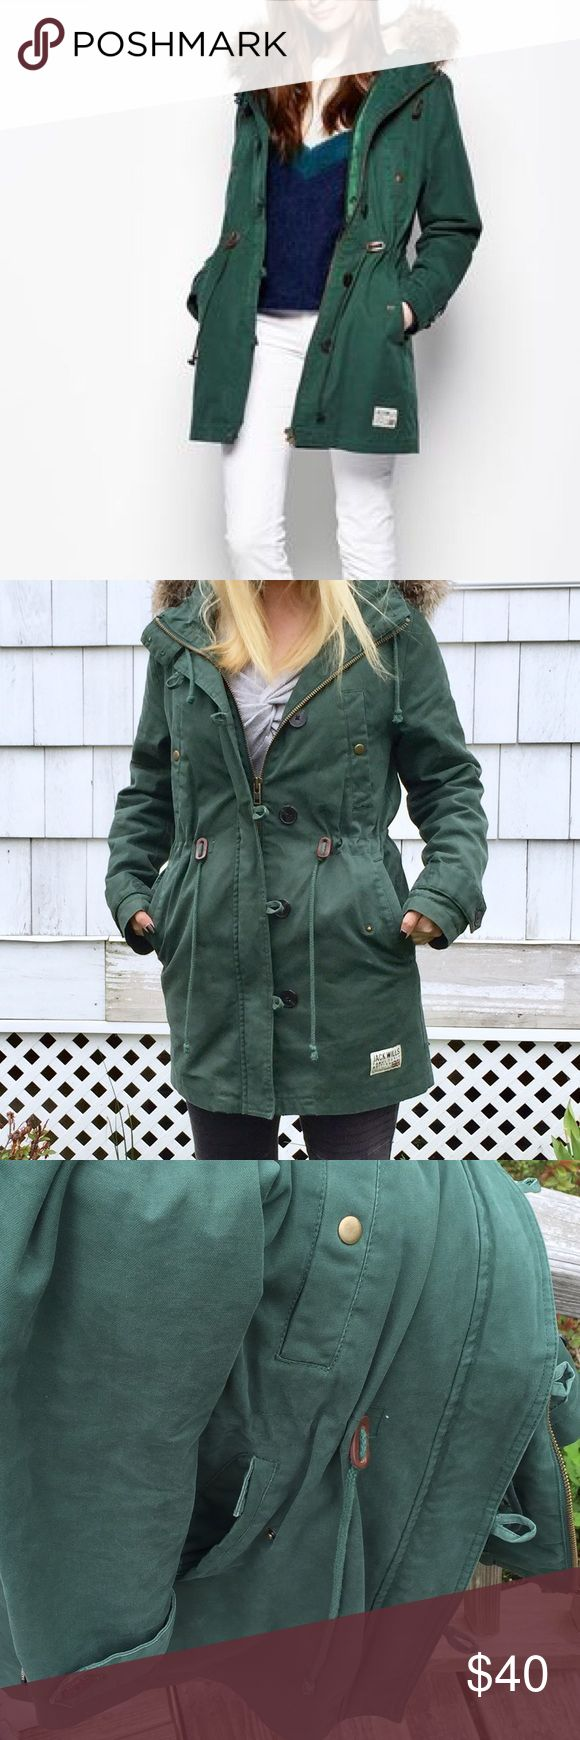 Jack Wills silverdale parka US size 2. EUC. Best fits XS-S imo. Jack Wills Jackets & Coats